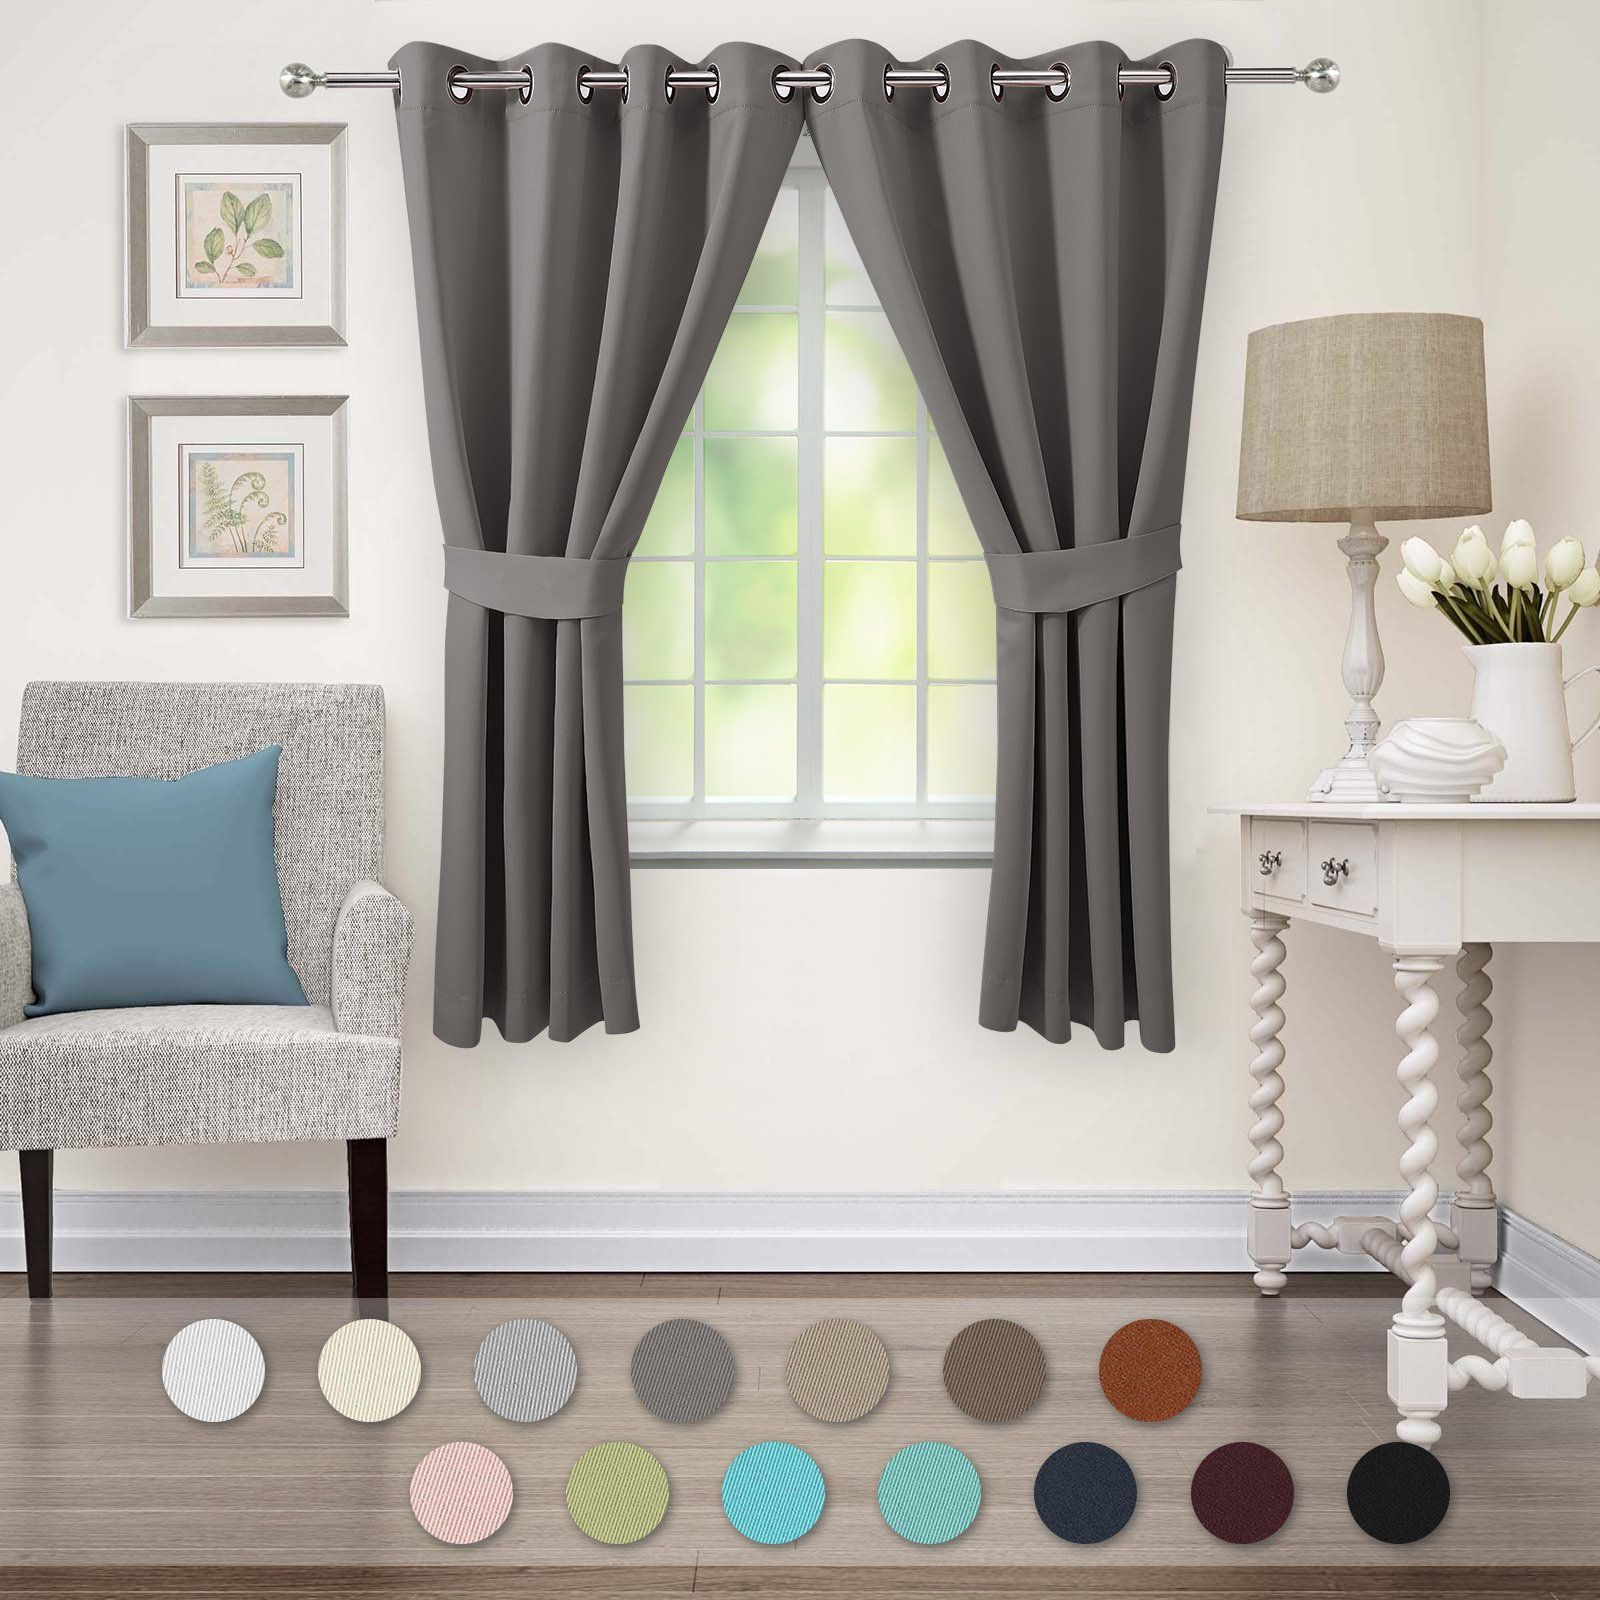 Veeyoo blackout curtains grommet thermal insulated window curtains